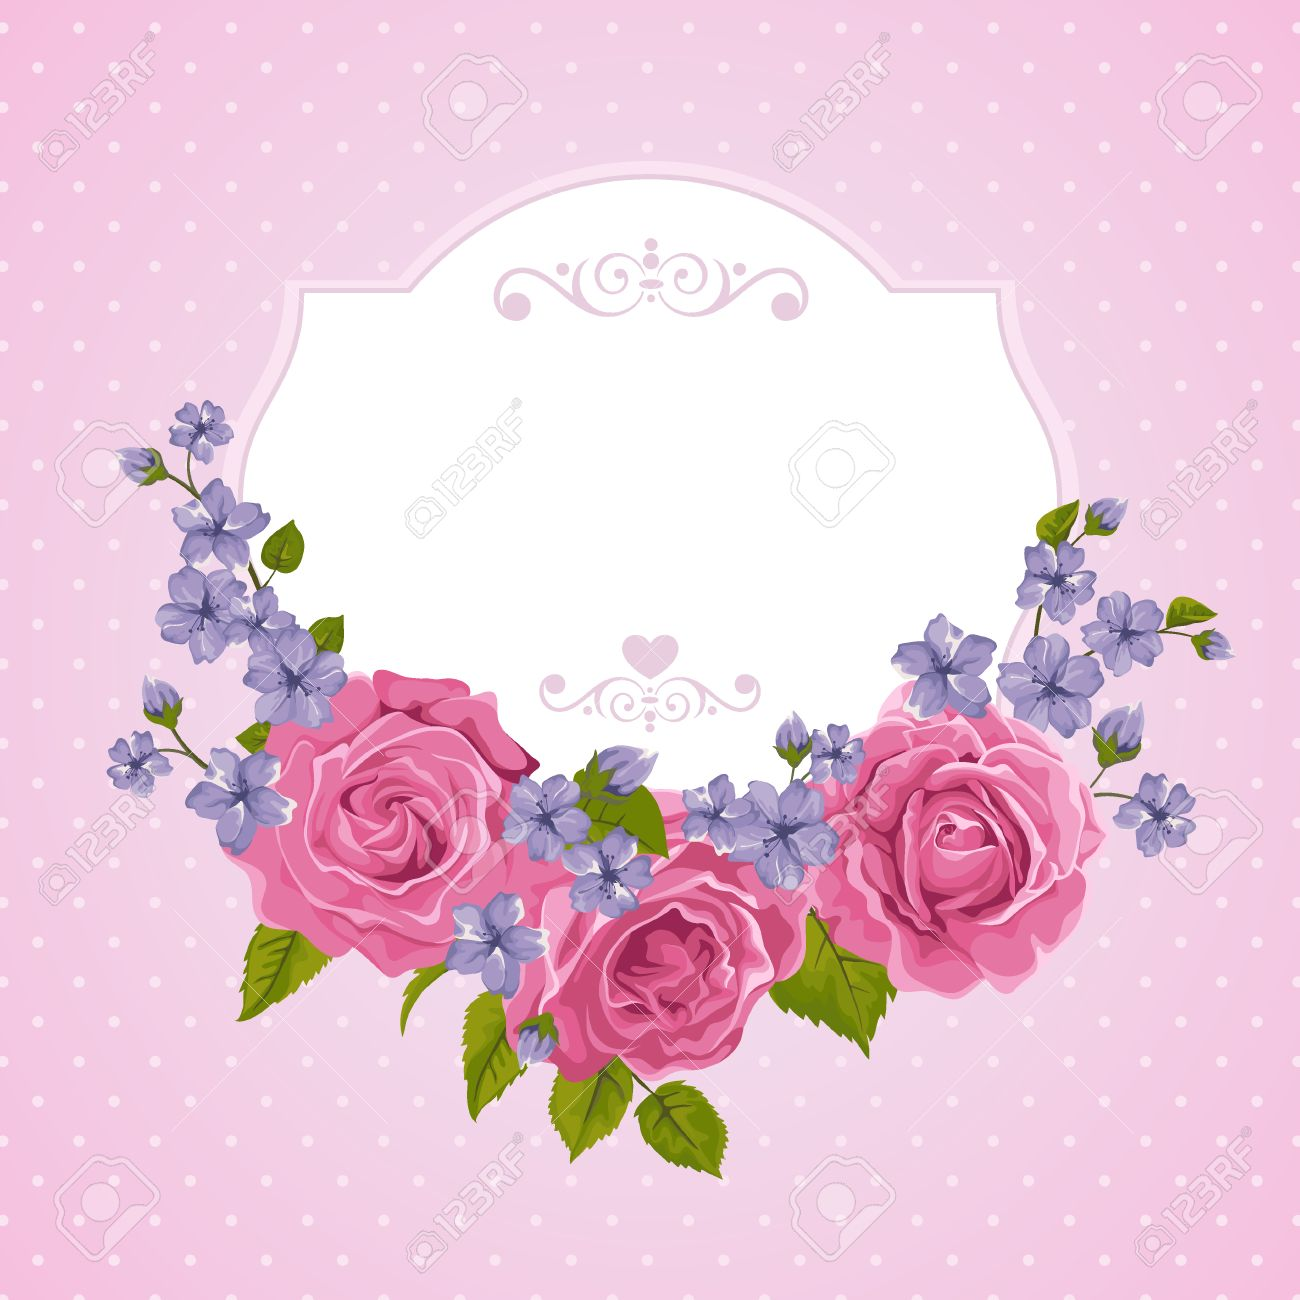 Floral greeting card with roses and frame background with polka floral greeting card with roses and frame background with polka dot perfect for greeting kristyandbryce Image collections